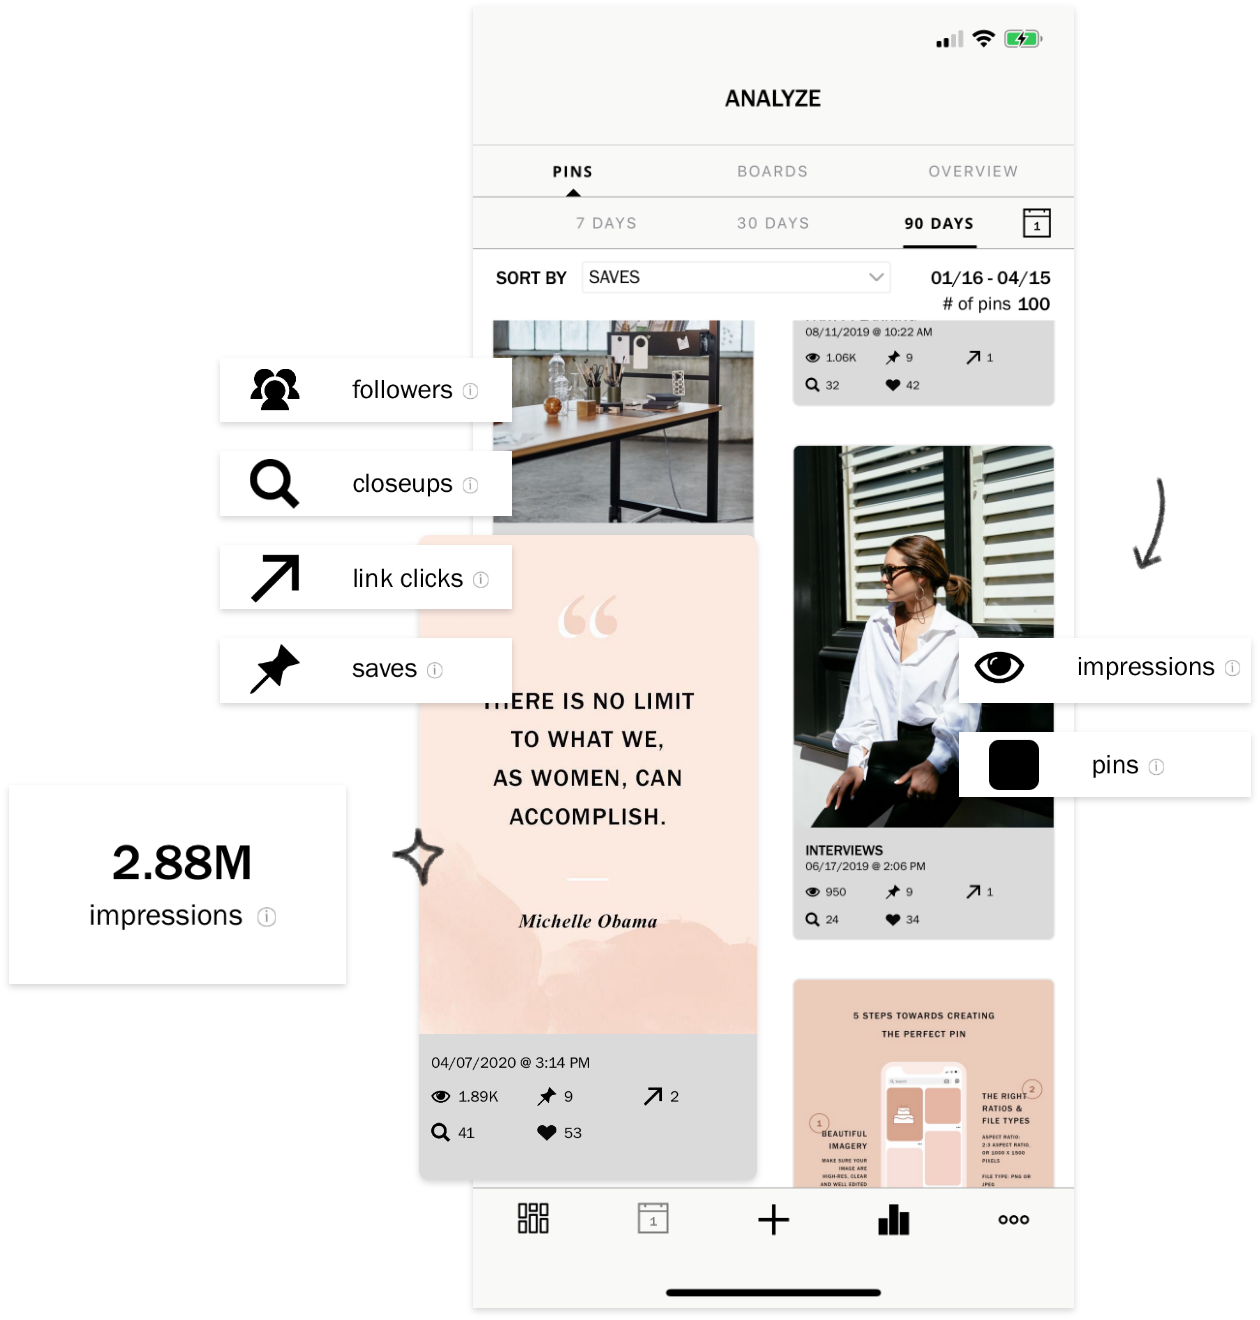 PLANOLY | Pinterest Analyze